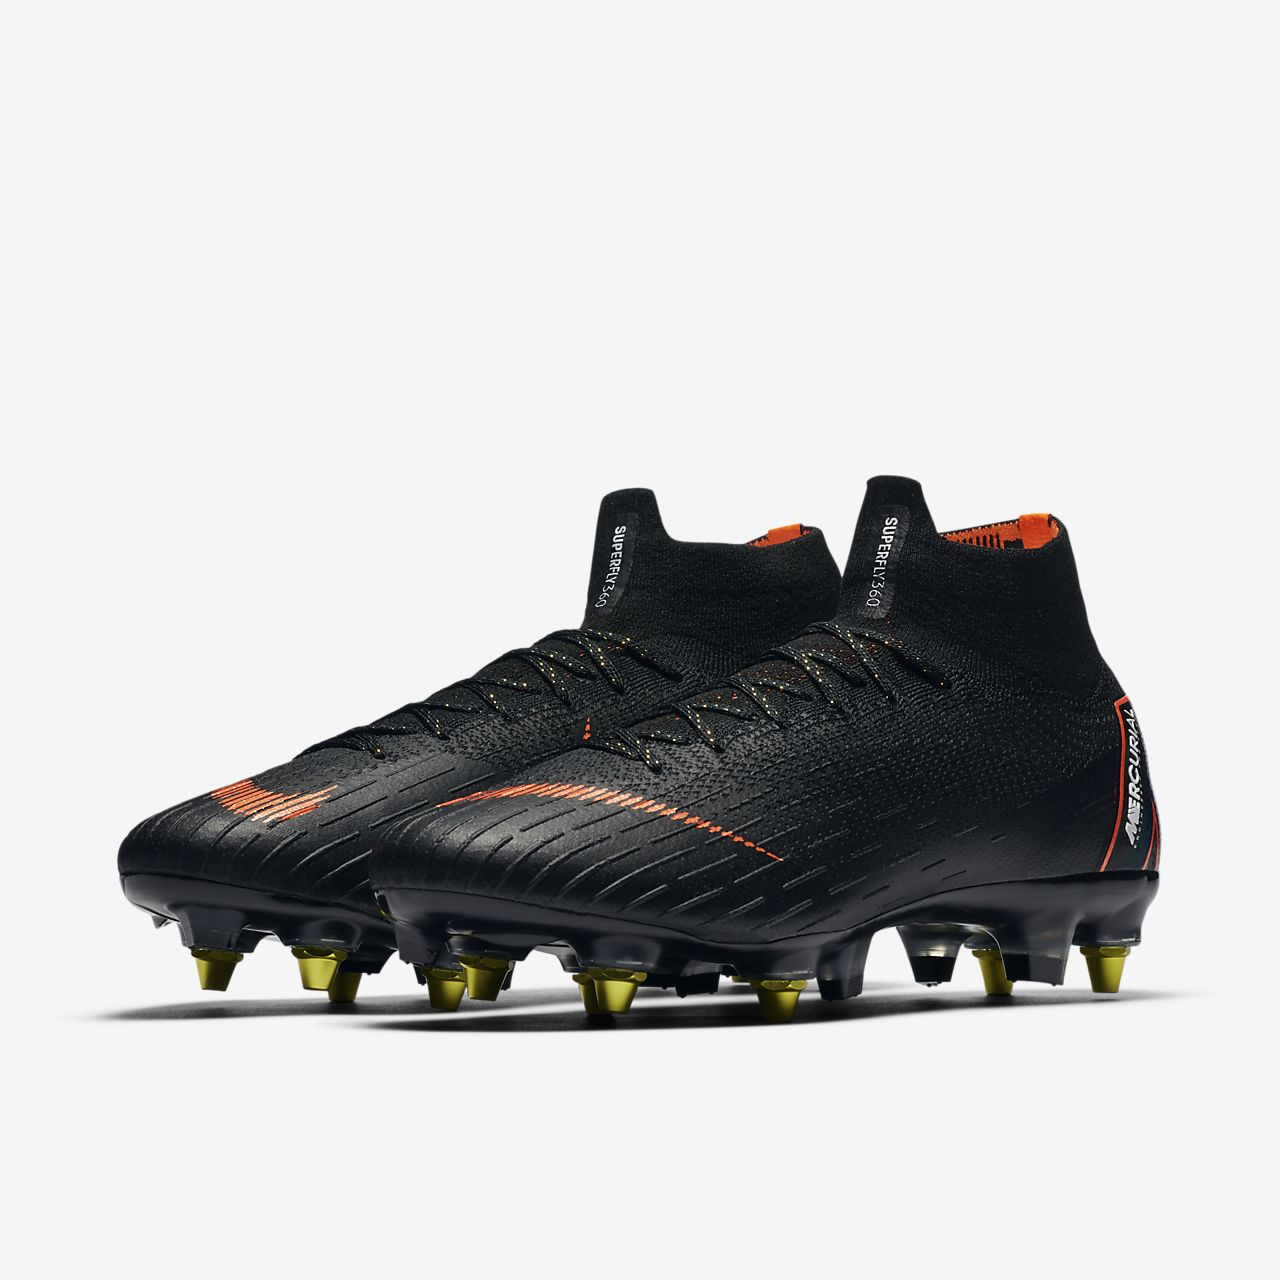 ... Nike Mercurial Superfly 360 Elite SG-PRO Anti-Clog Soft-Ground Football  Boot